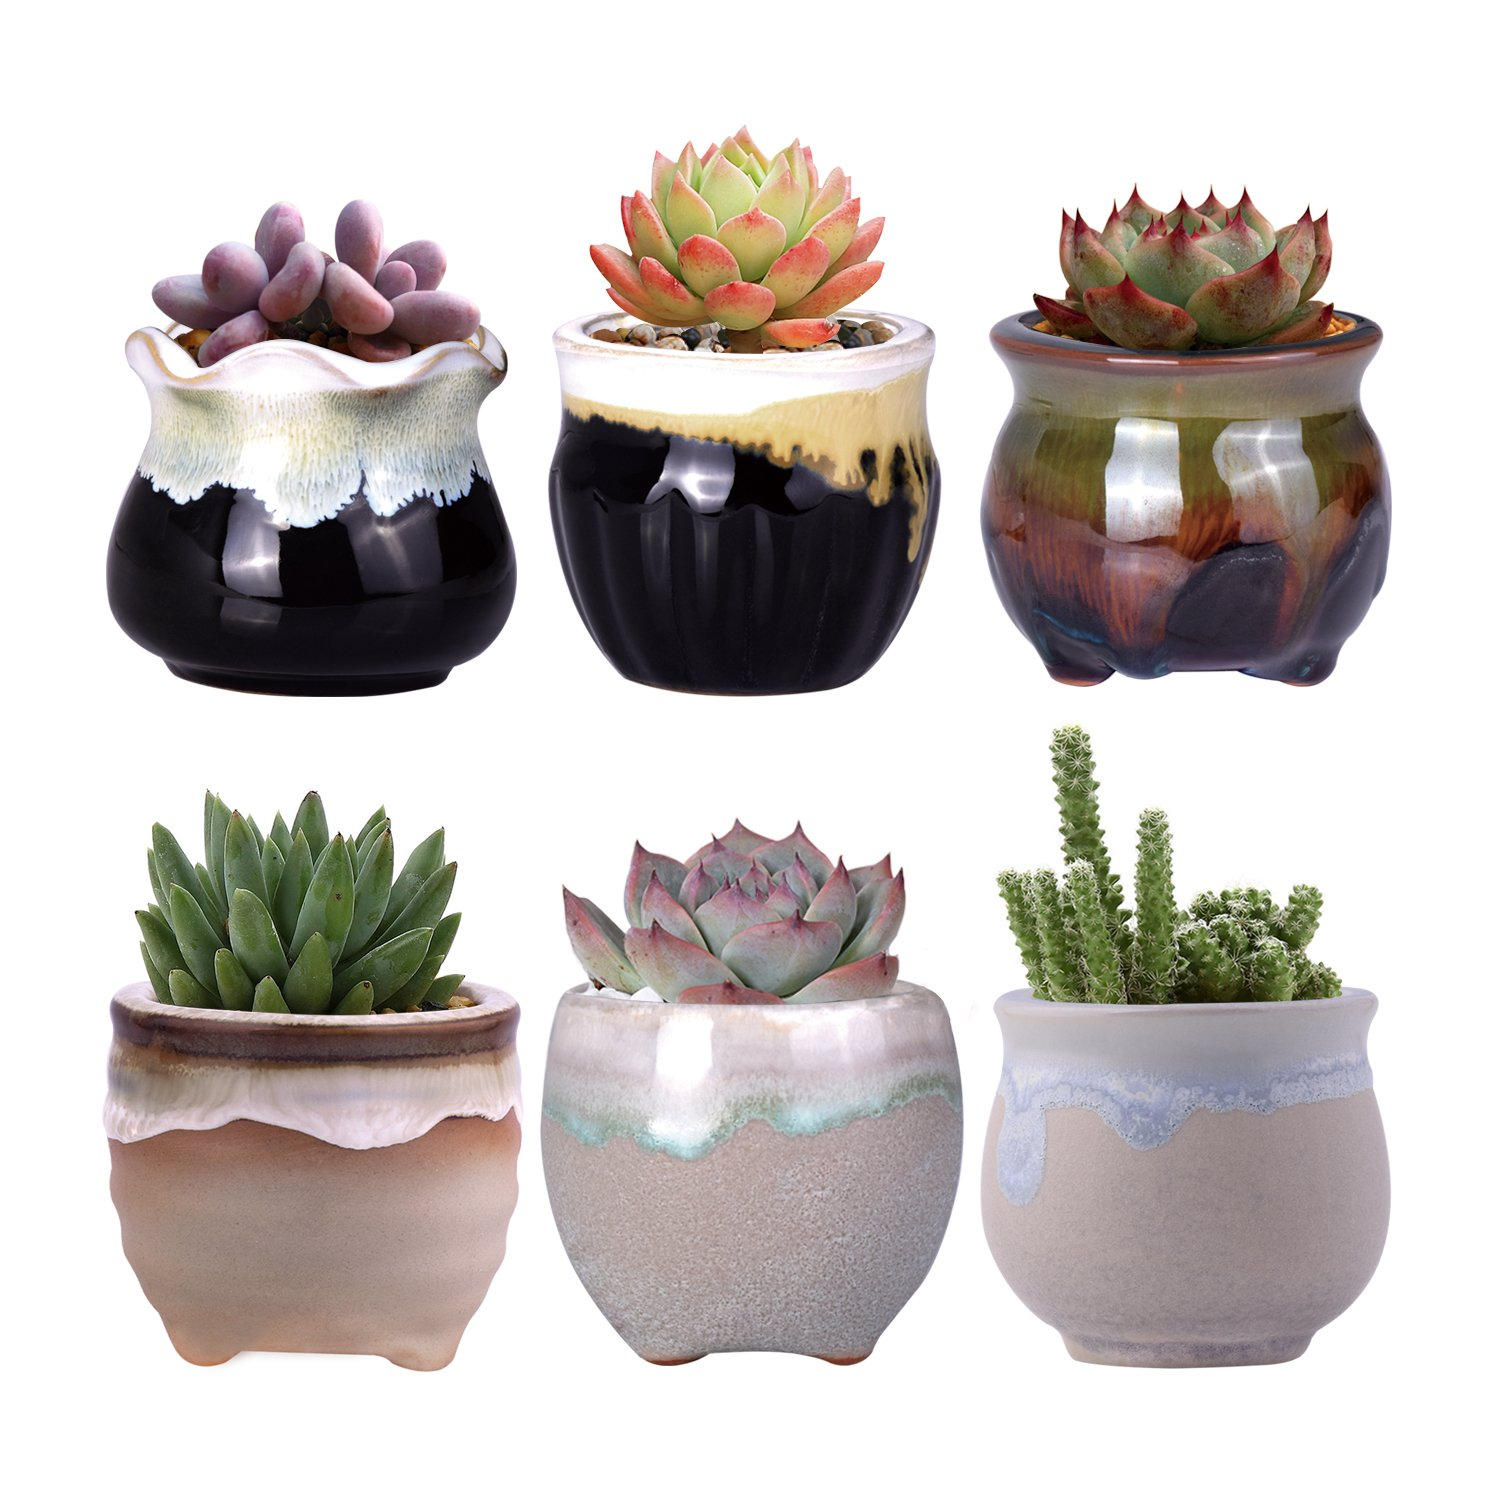 WITUSE small planters cactus planter father's day succulent pots, small cactus pot small succulent pots, glazed ceramic plants pot - 6pcs by WITUSE